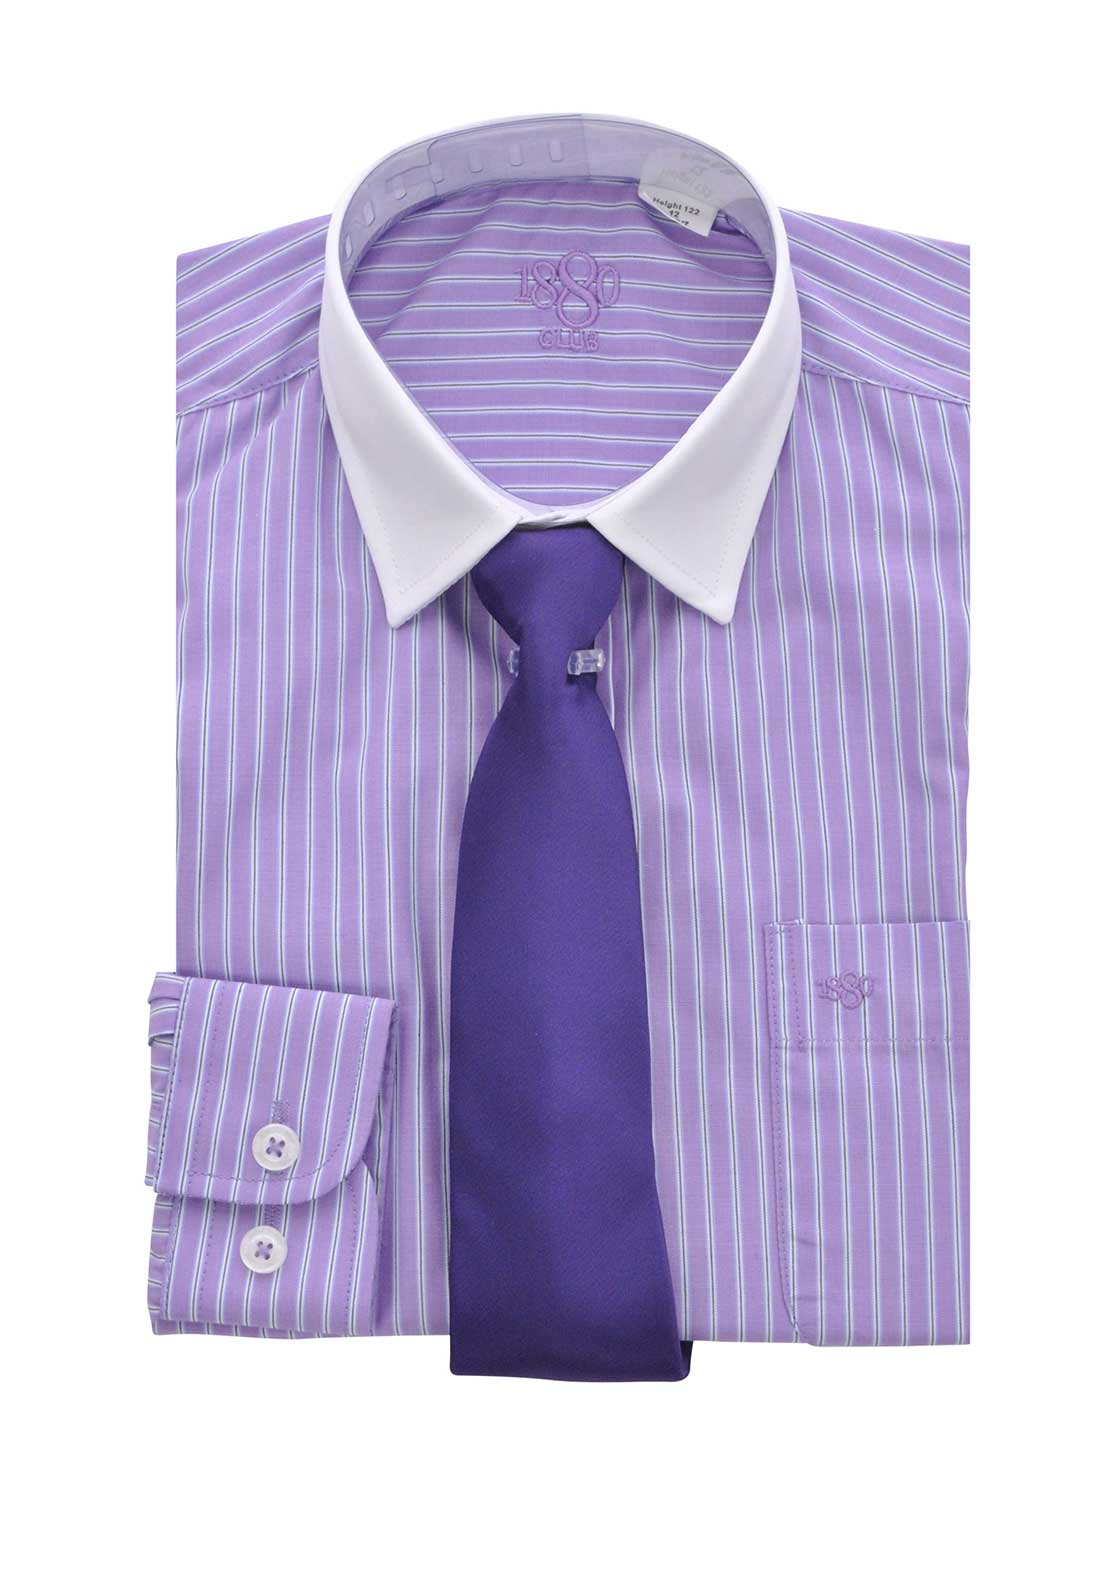 1880 Club Boys Long Sleeve Striped Shirt and Tie, Purple